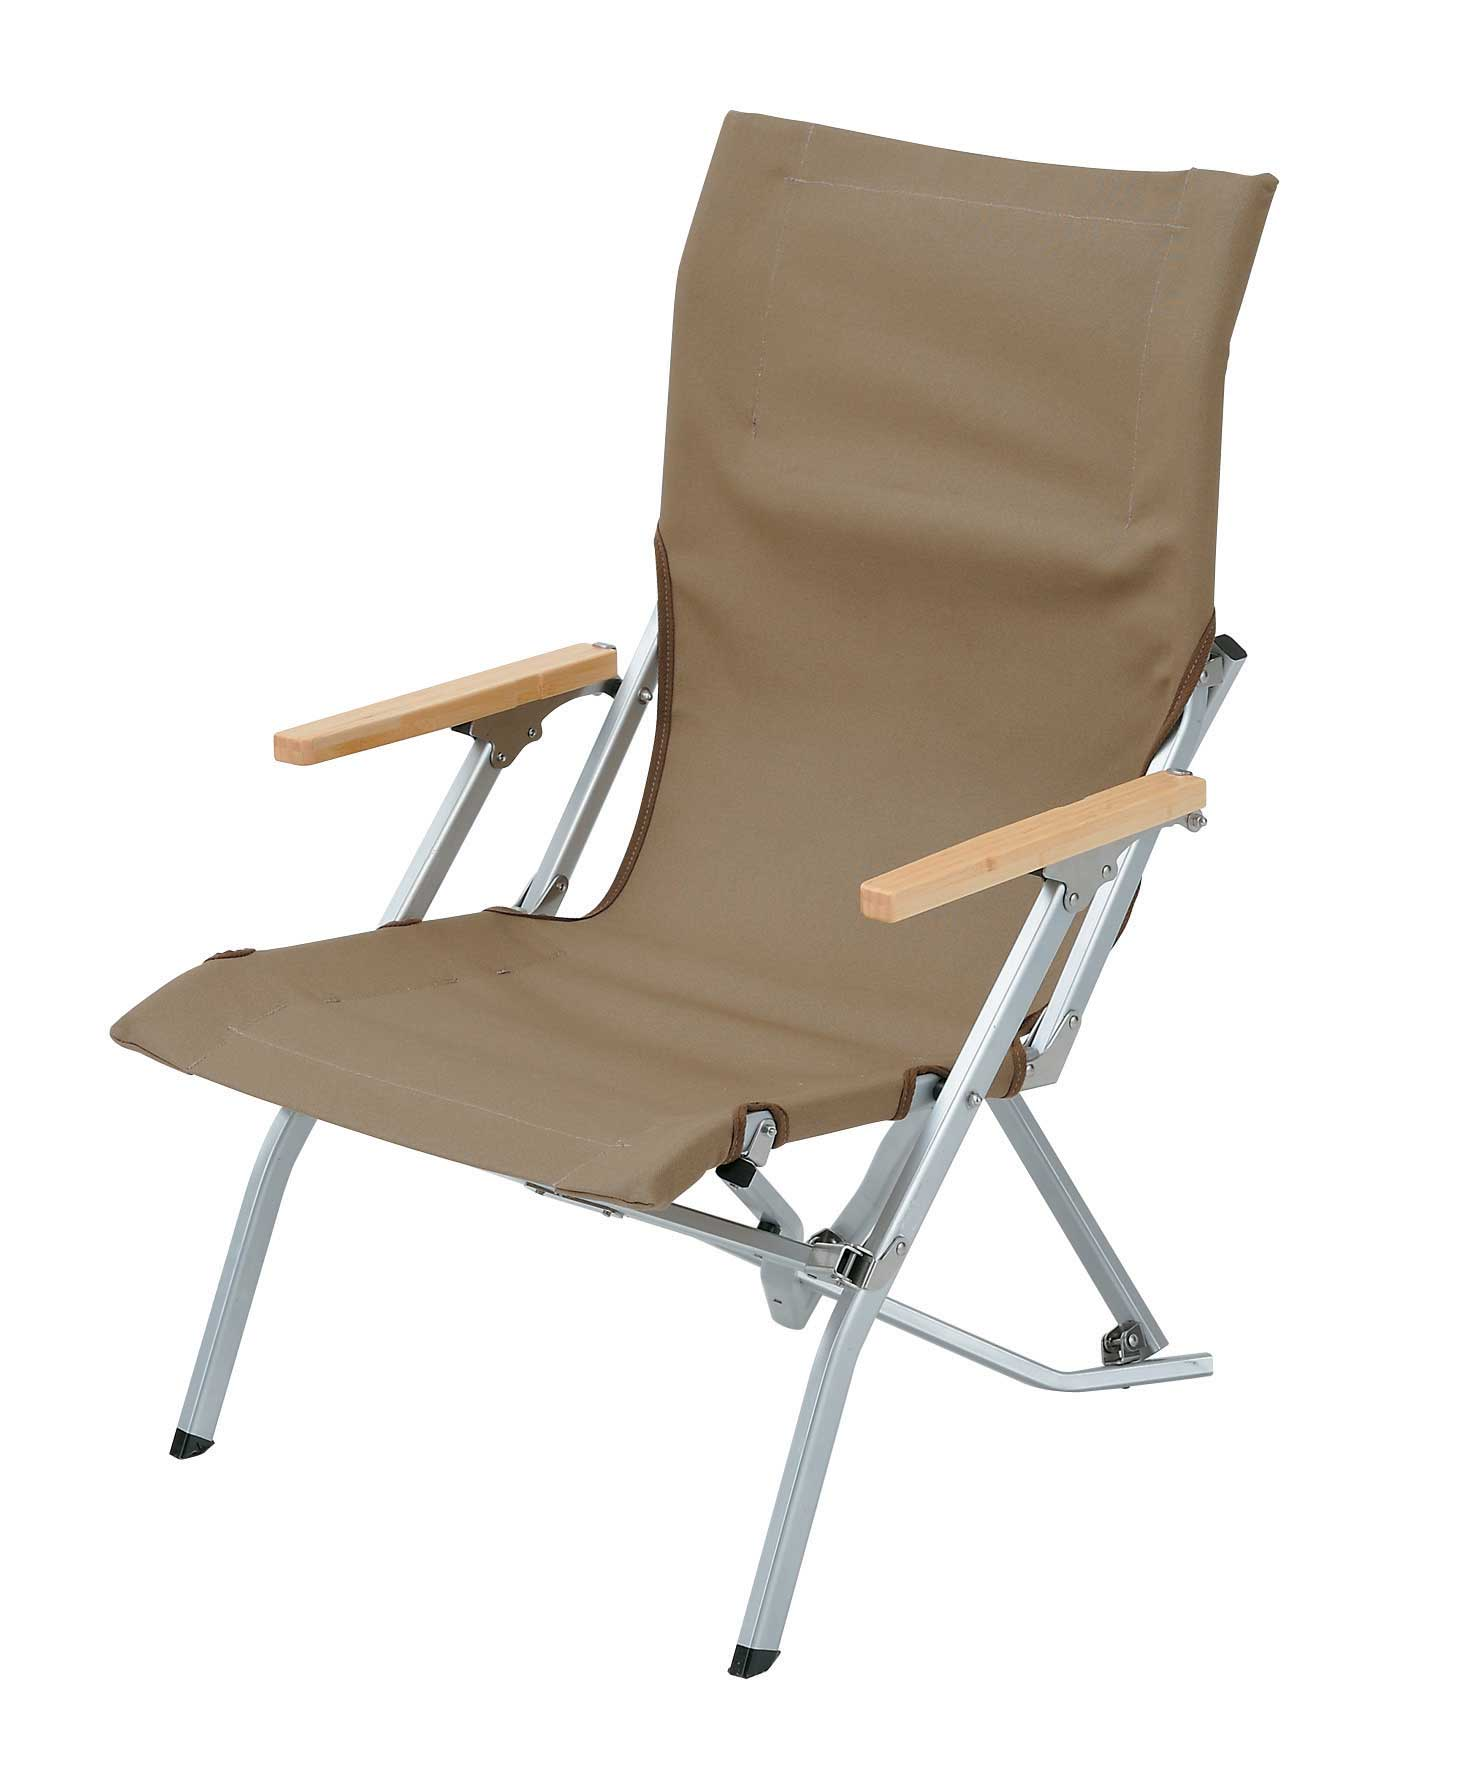 Foldable canvas chair with armrest